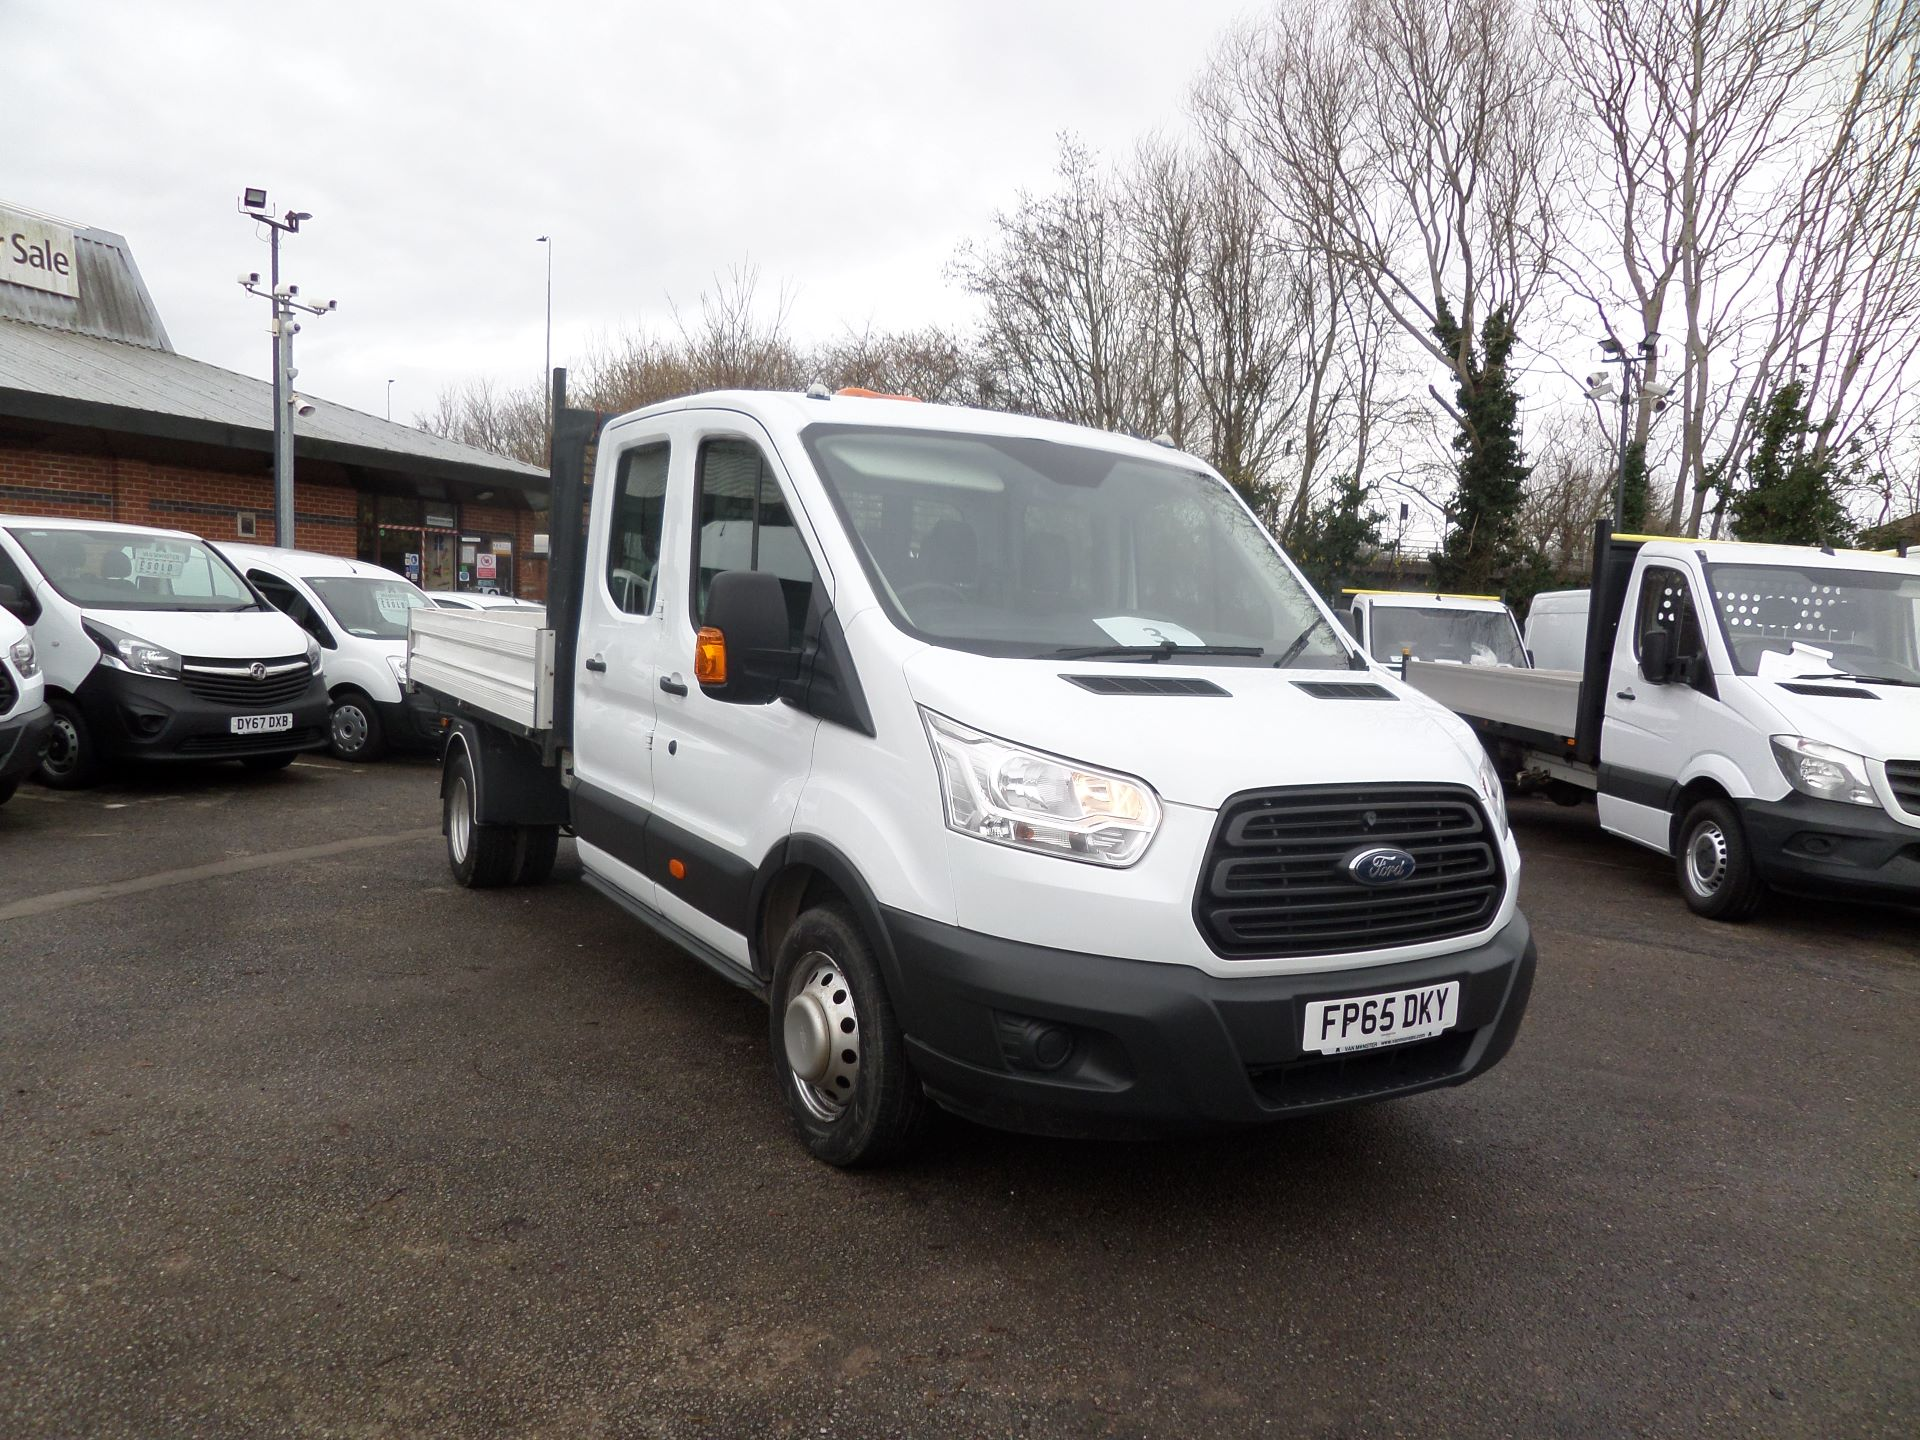 2015 Ford Transit 2.2 Tdci 125Ps Double Cab Tipper Euro 5 (FP65DKY)